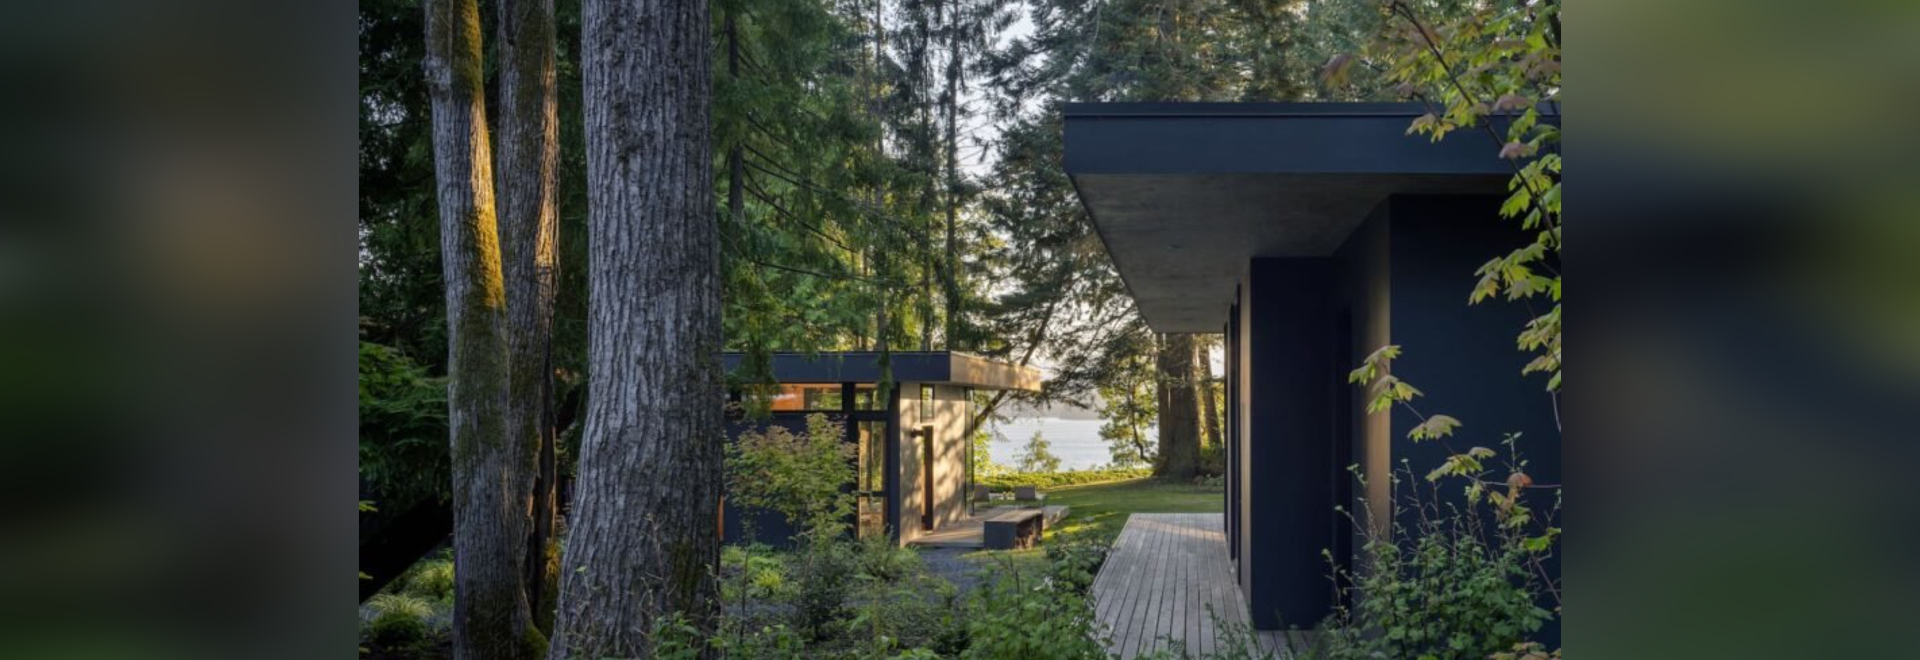 A cluster of coast forest cabins brings a nature-loving family closer together